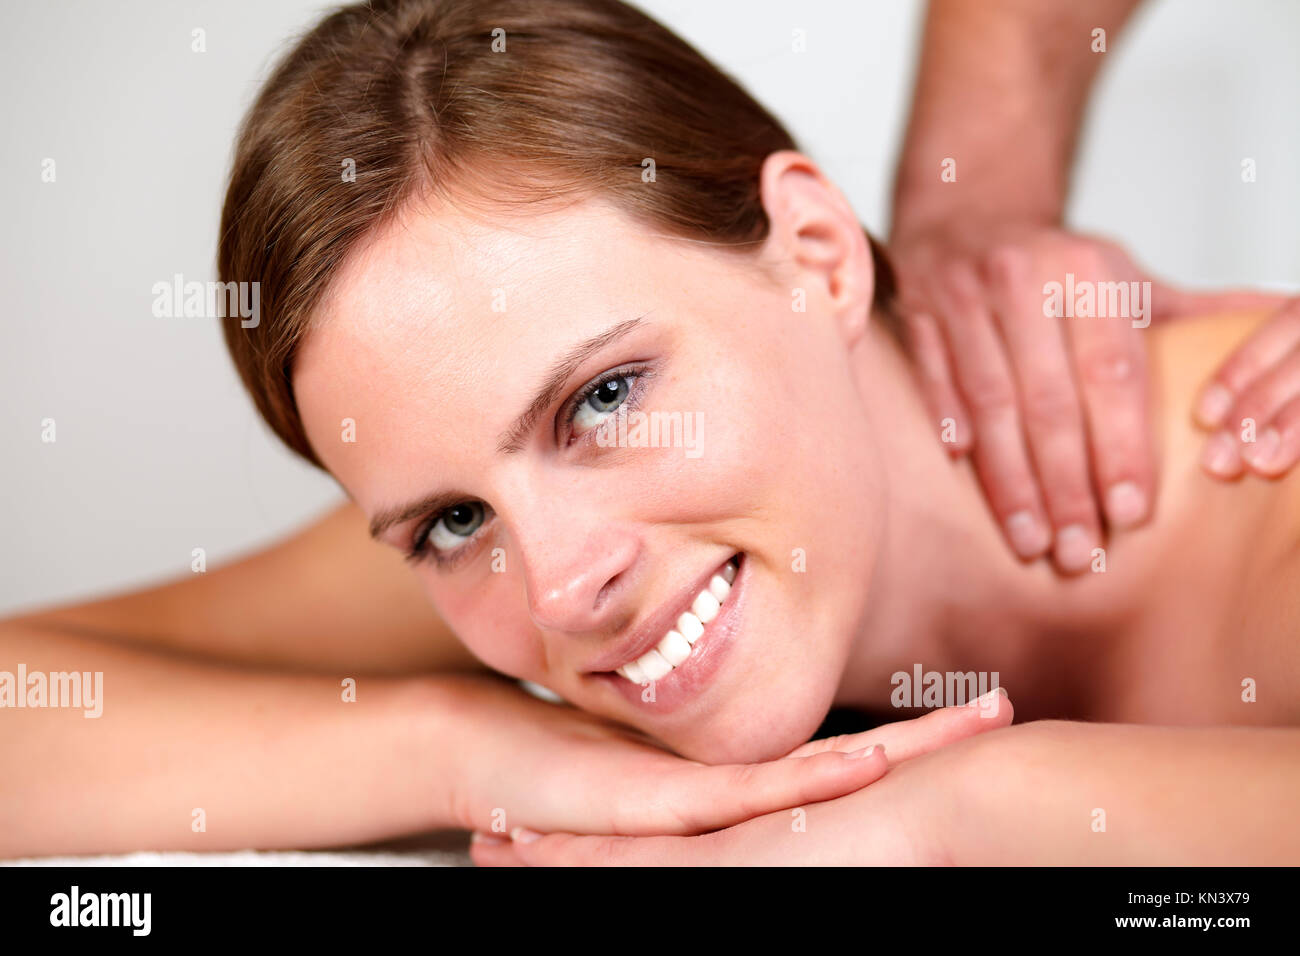 Close-up portrait of a lovely pretty woman smiling and relaxing while getting a massage from a professional masseuse Stock Photo